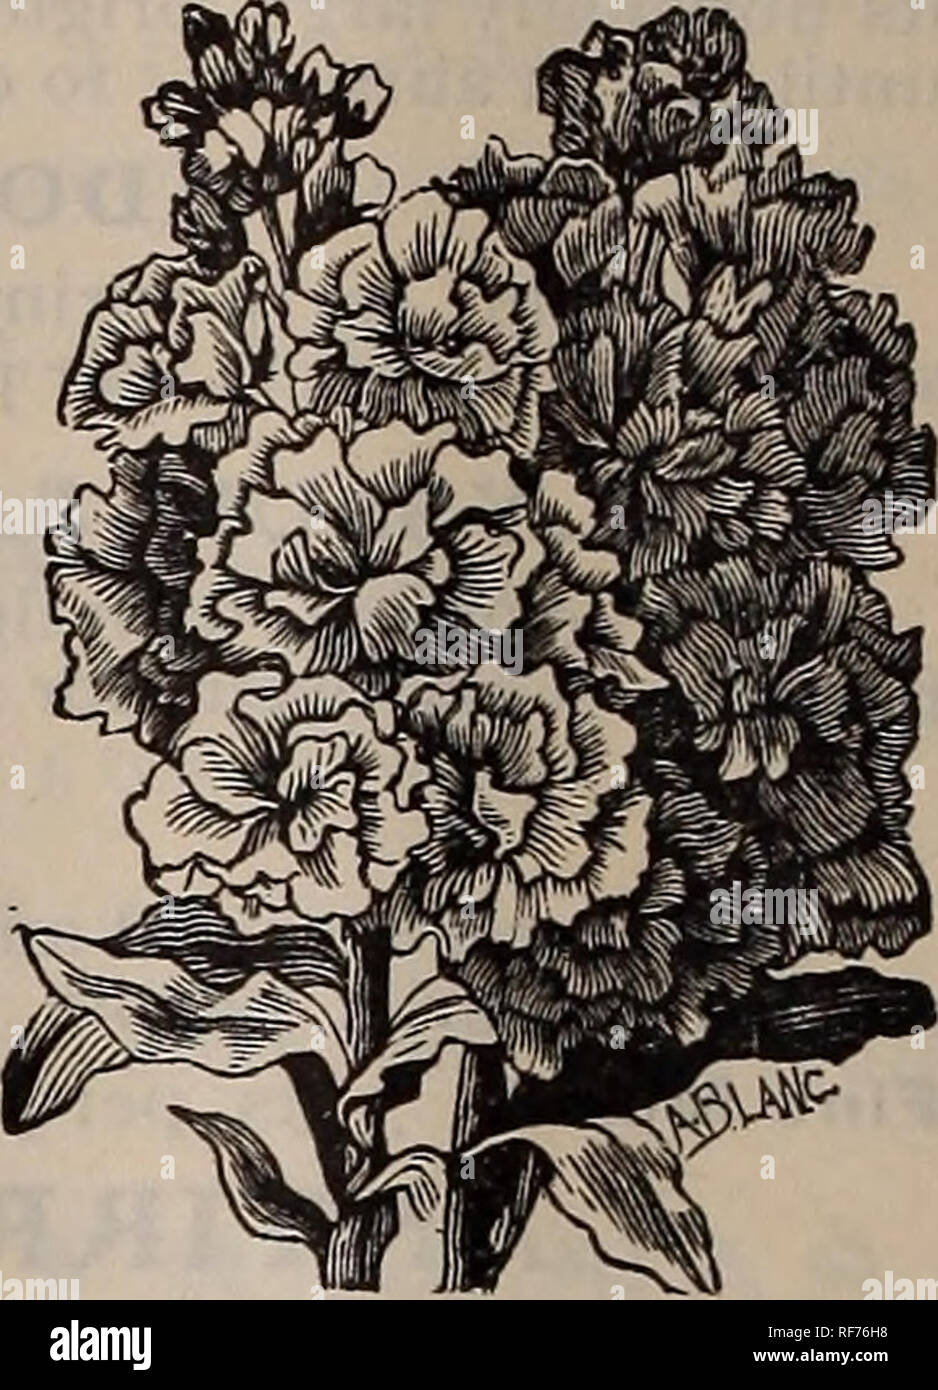 . Seeds and implements. Nursery stock Rhode Island Providence Catalogs; Vegetables Seeds Catalogs; Flowers Seeds Catalogs; Agricultural implements Catalogs. Myosotis. M. M. PENTSTELMON (Beard Tongue) The flowers are borne in graceful spikes. The plants are herbaceous, and bloom from early summer until frost. The flowers are white, blue, scarlet, crimson, yellow, etc. Mixed, 10 cts. per pkt. SWEET WILLIAM See Dianthus barbatus. PAPAVER ORIENTALE Large, brilliant flowers, rich and bright in their color. The loose, silken petals have each one a blotch of black at the base. The plants are about 2  - Stock Image